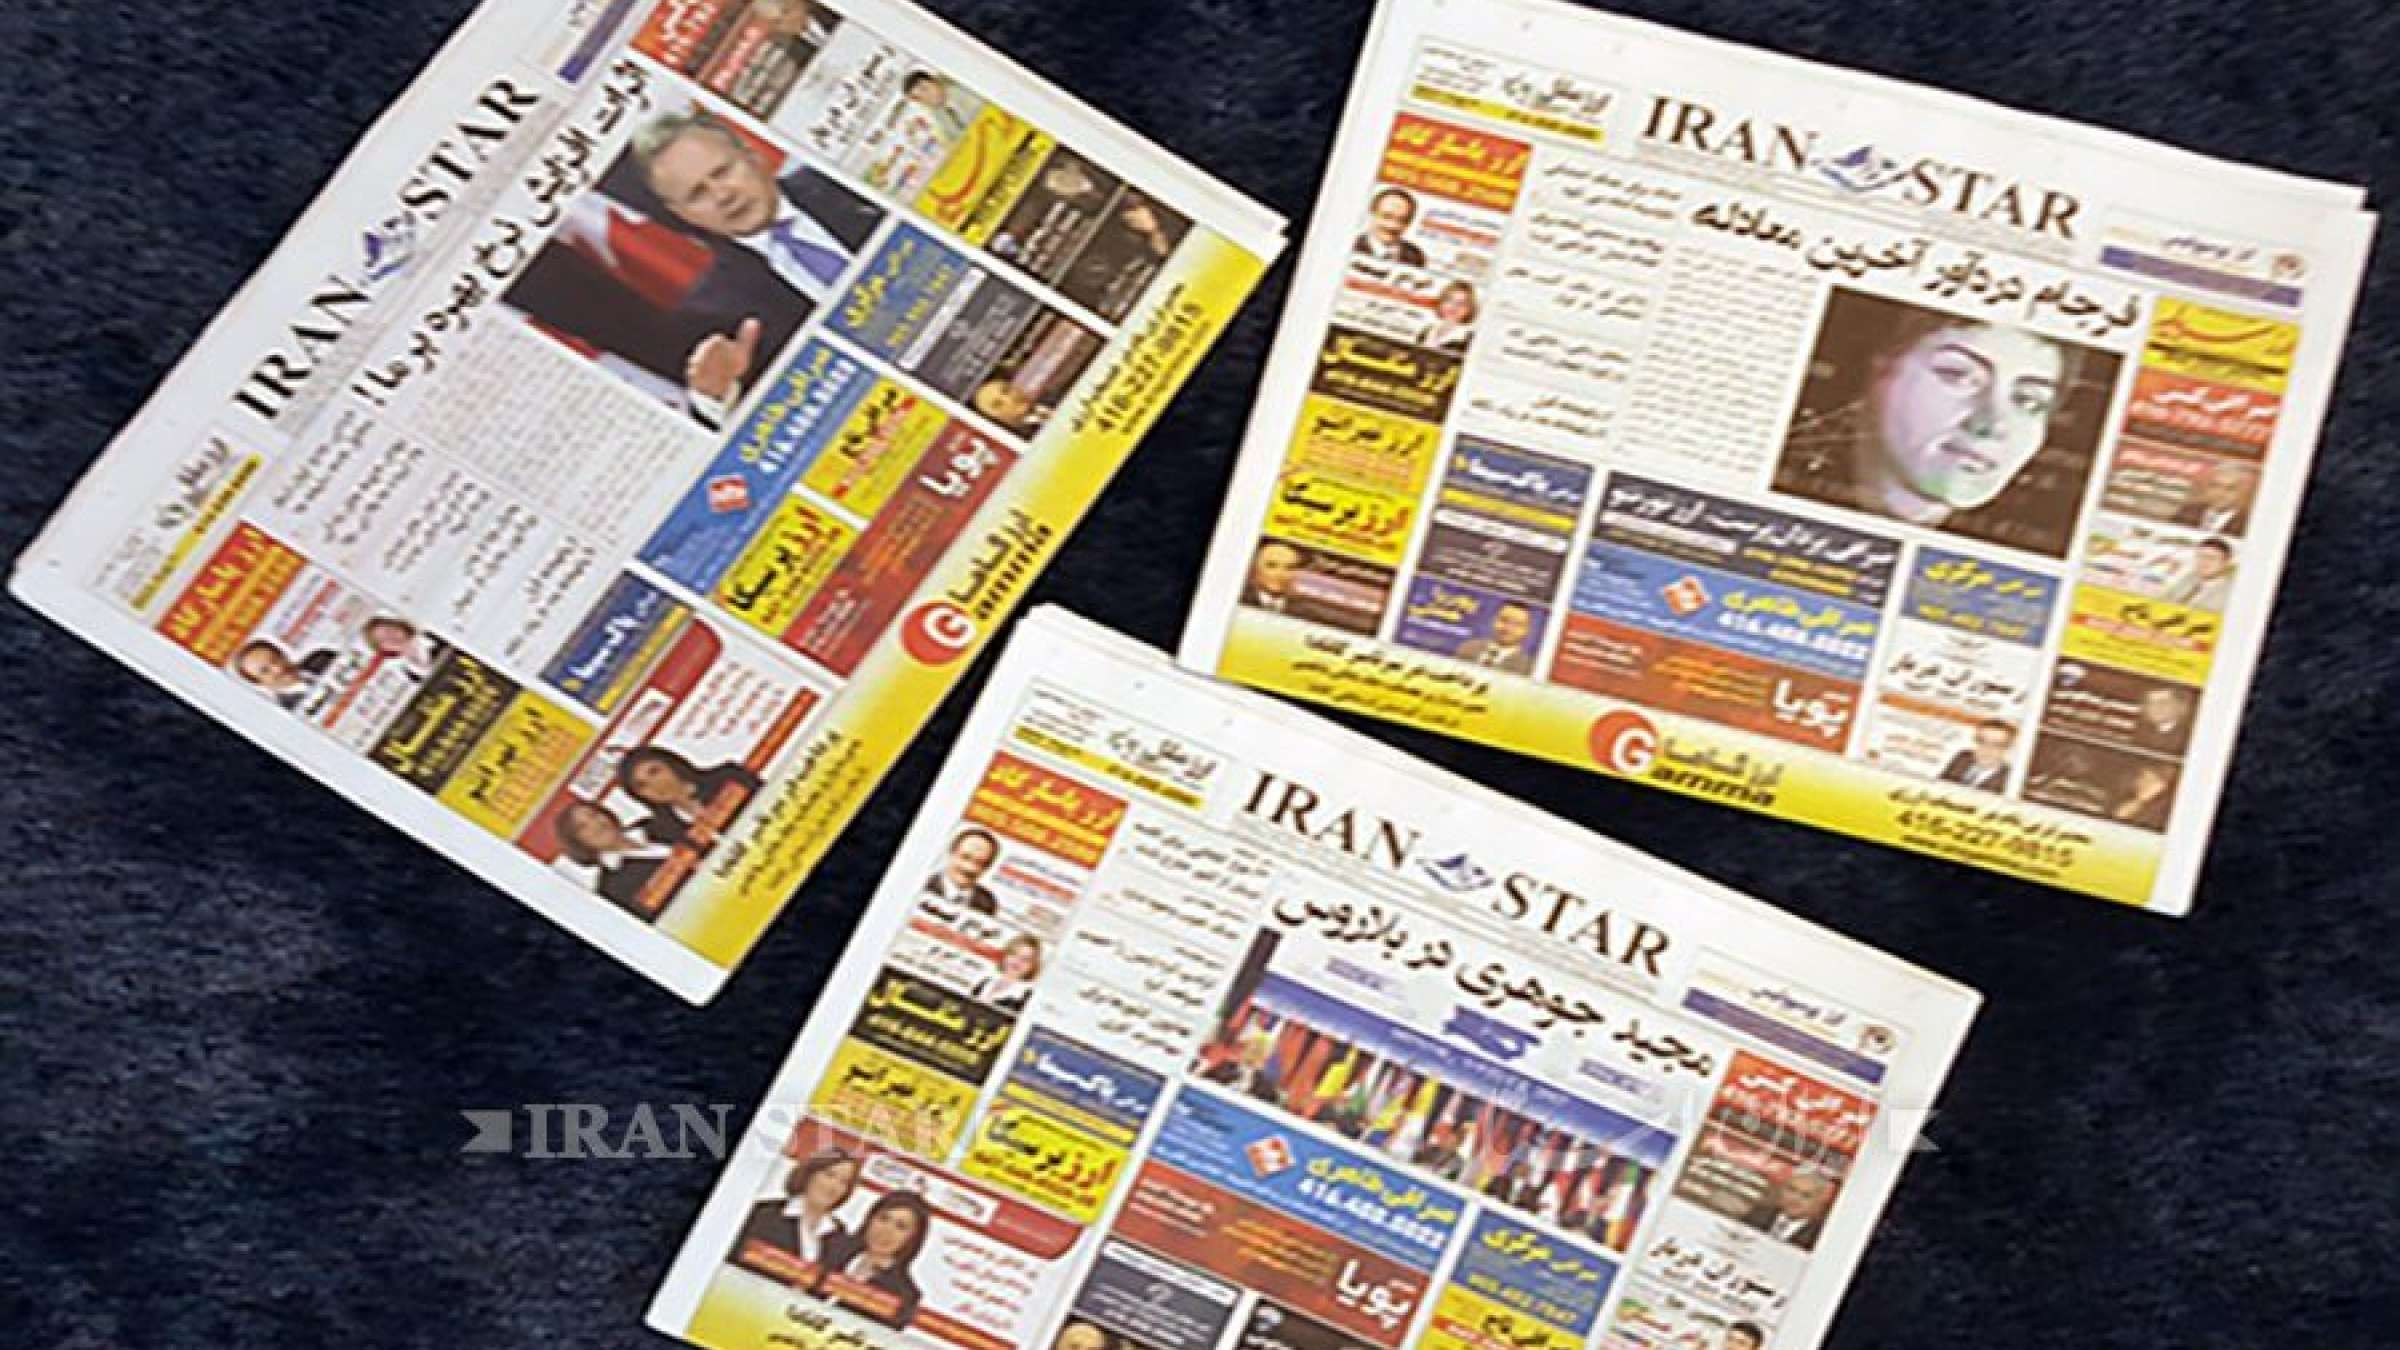 Iran Star best Iranian Persian media Marketing Newspaper online